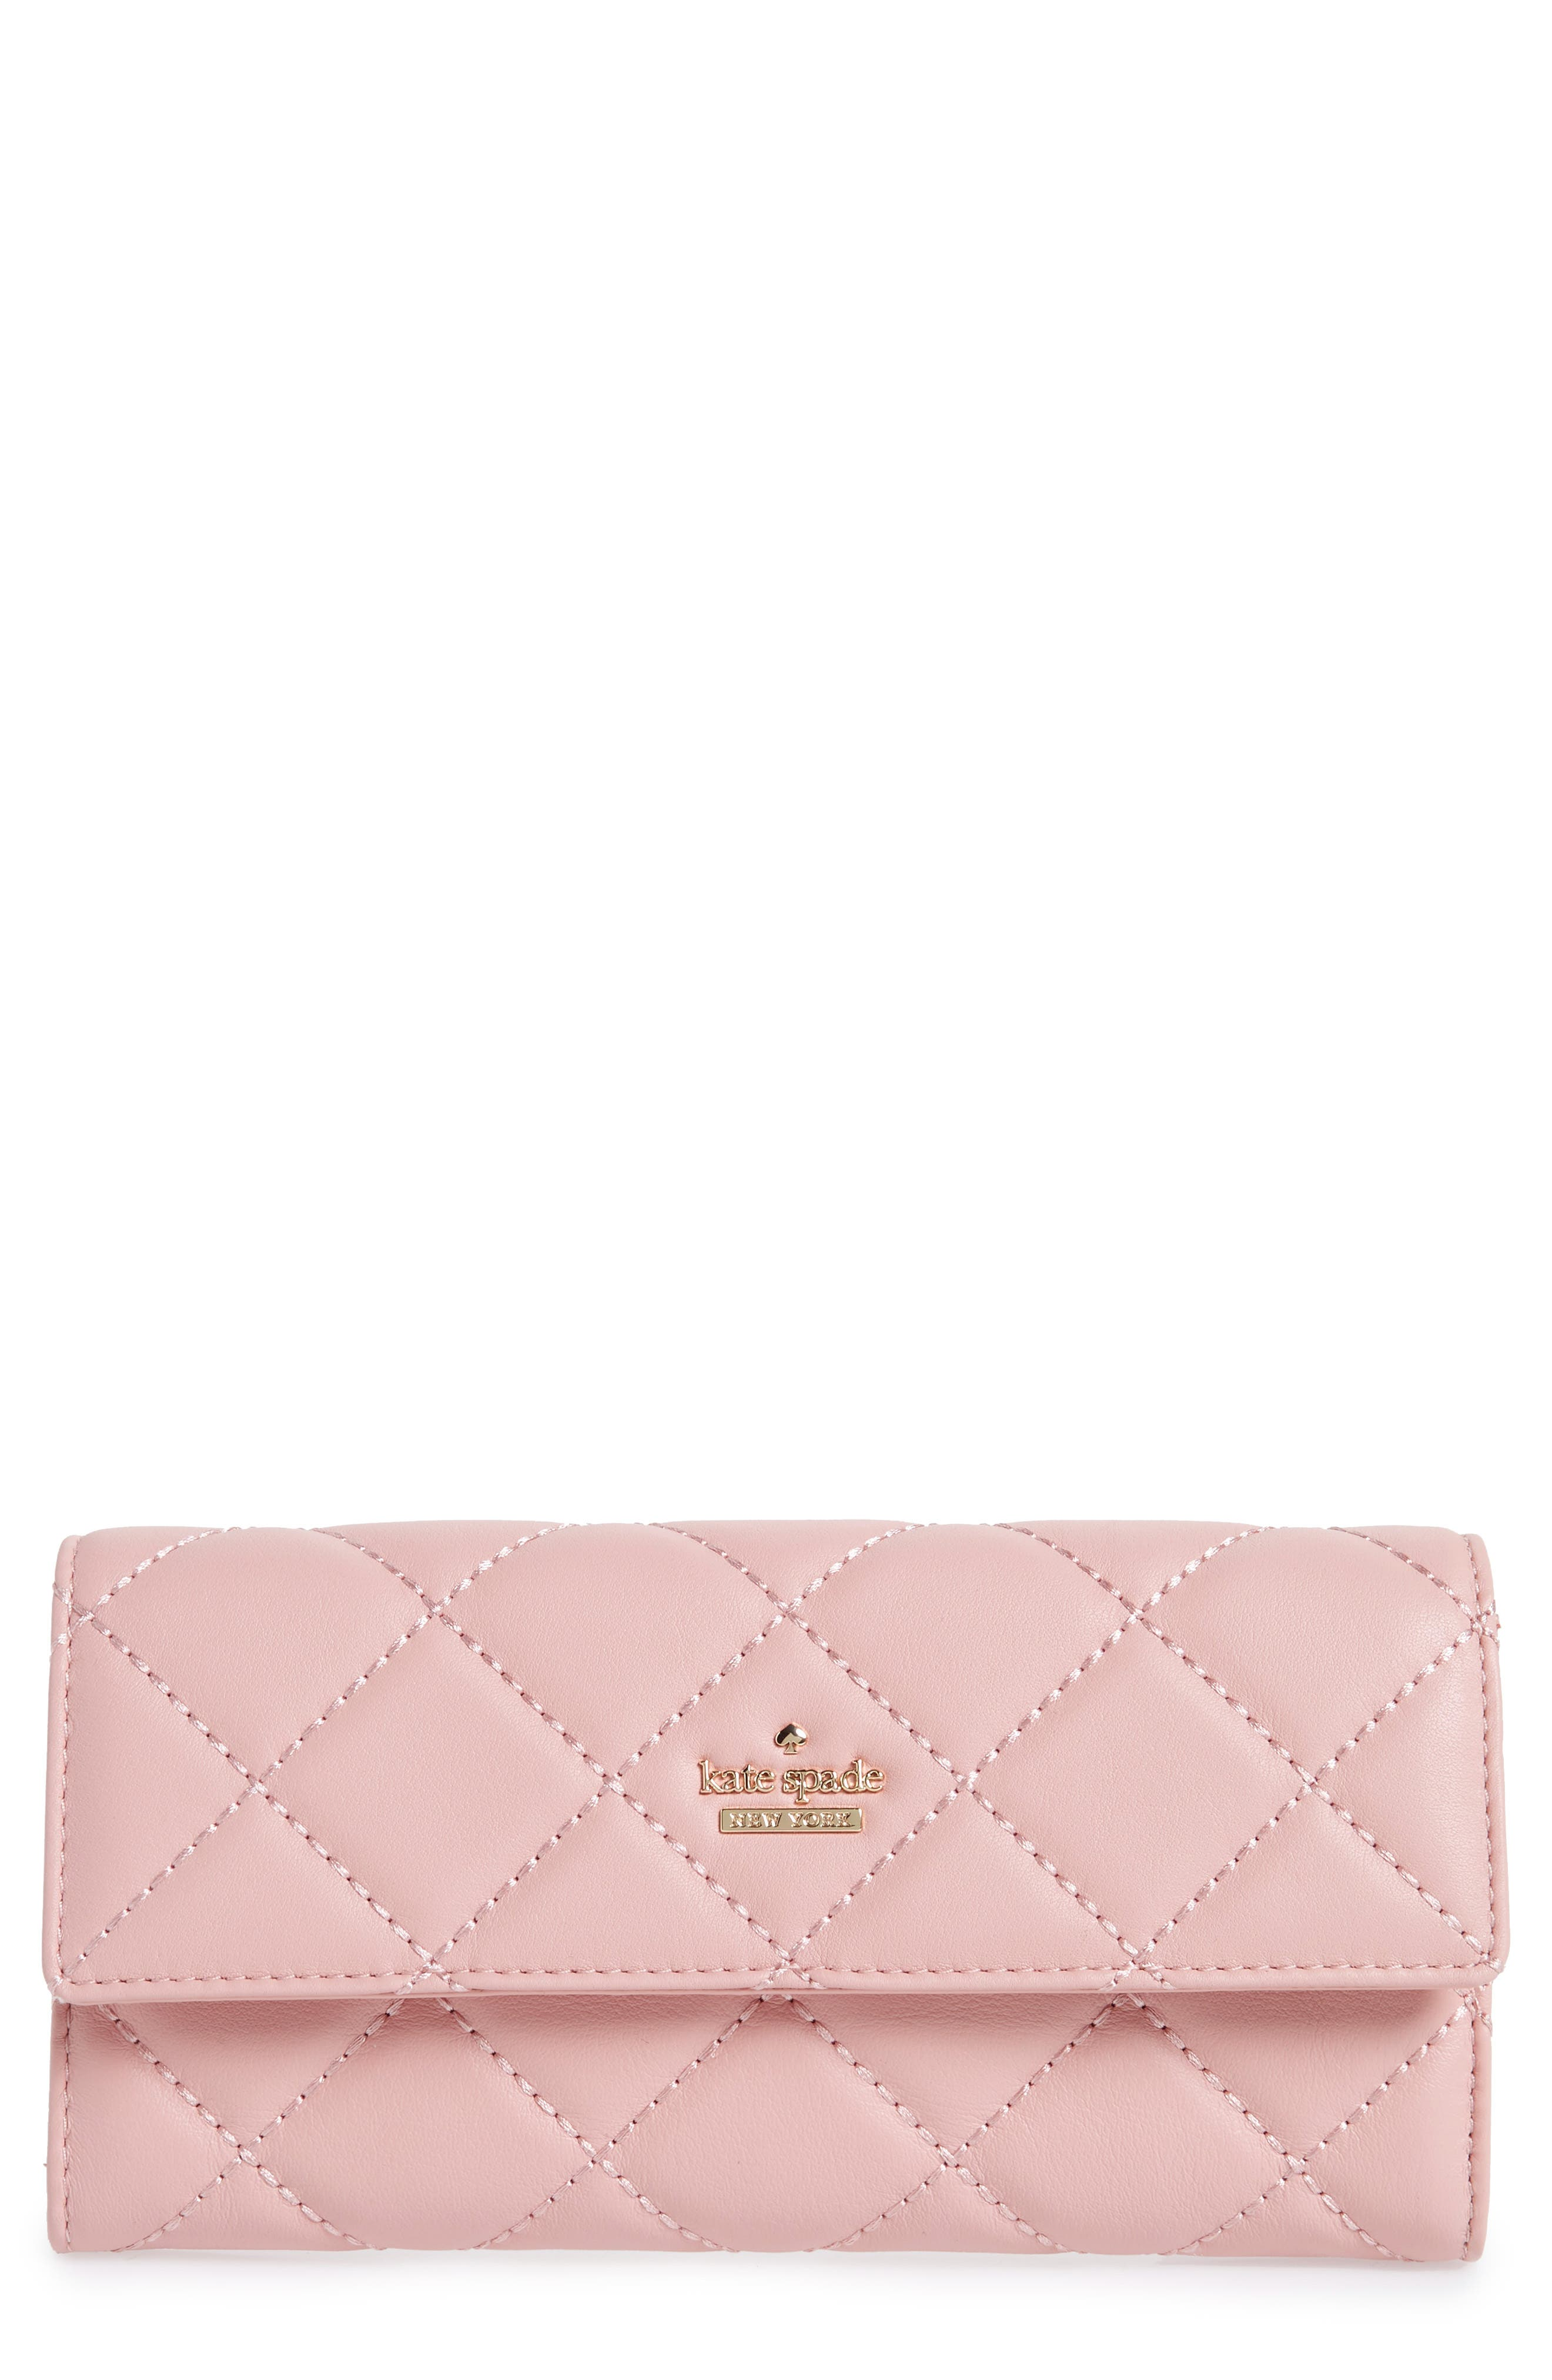 emerson place - kinsley quilted leather wallet,                         Main,                         color, Rosy Cheeks